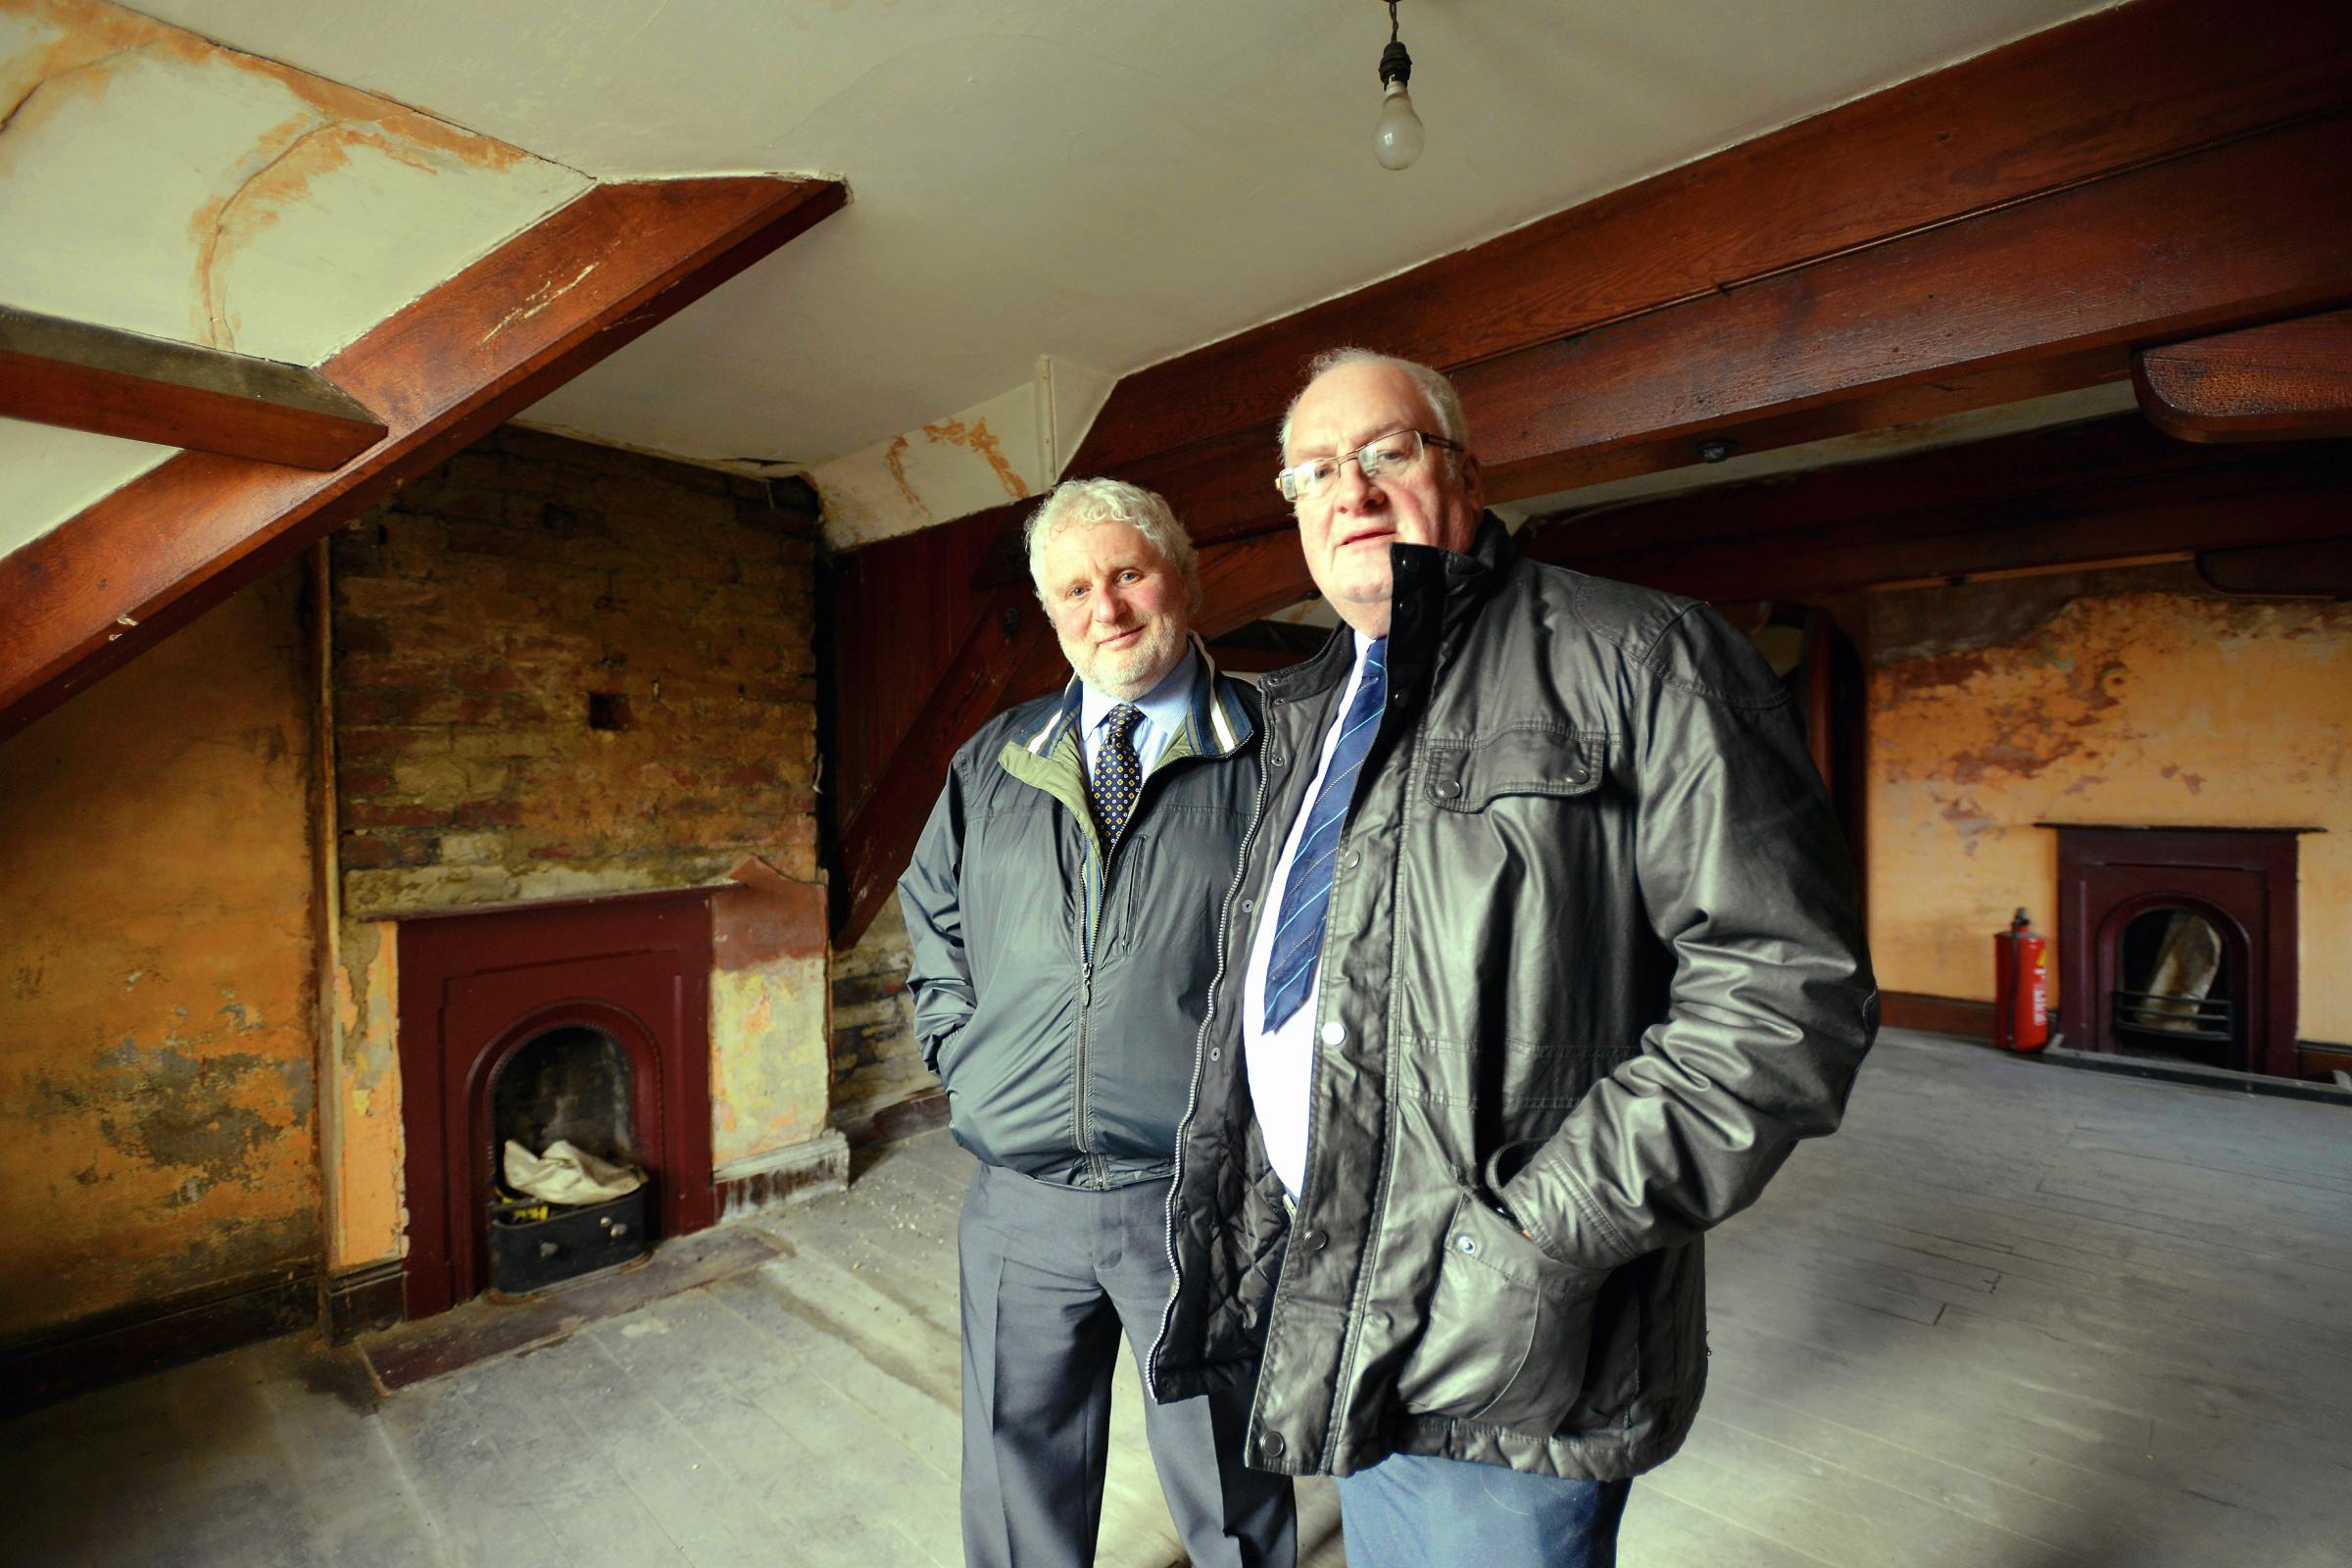 Coun Paul Cromie (left) and Coun Michael Walls upstairs in the former Nat W